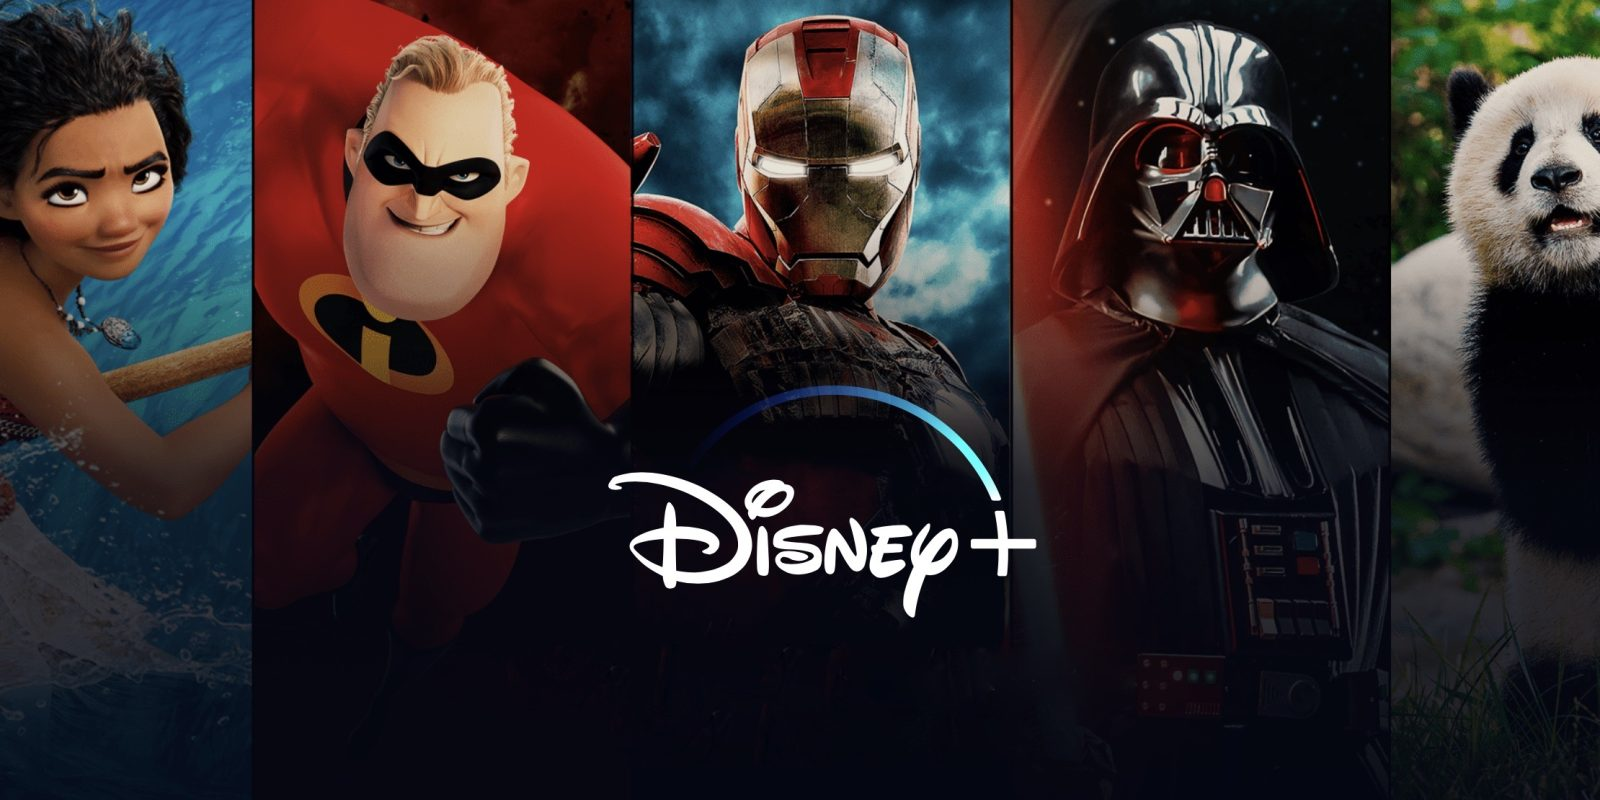 Looking for the best Disney+ deal? Check out these bundles, promos, and more